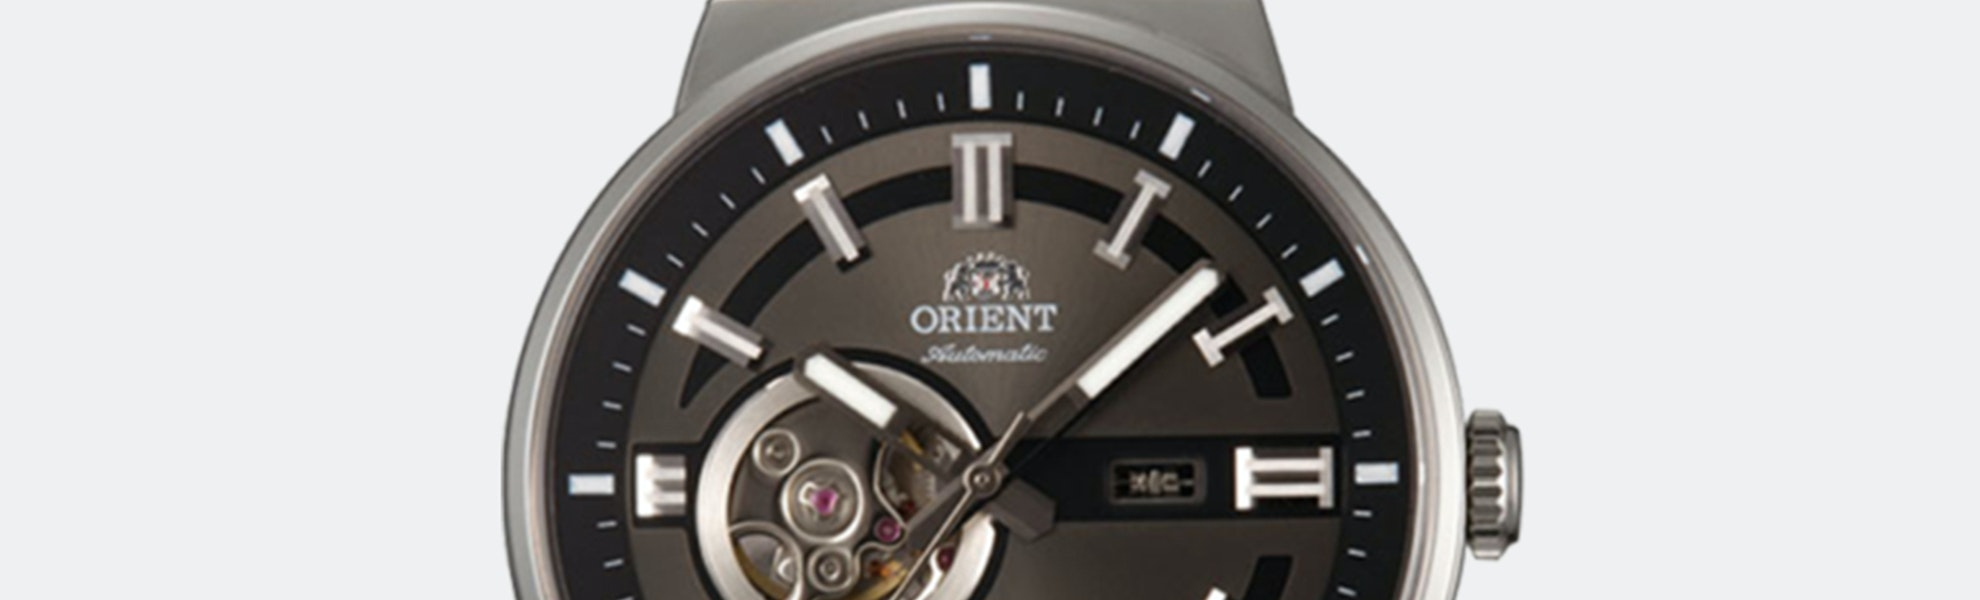 Orient Eclipse Automatic Watch